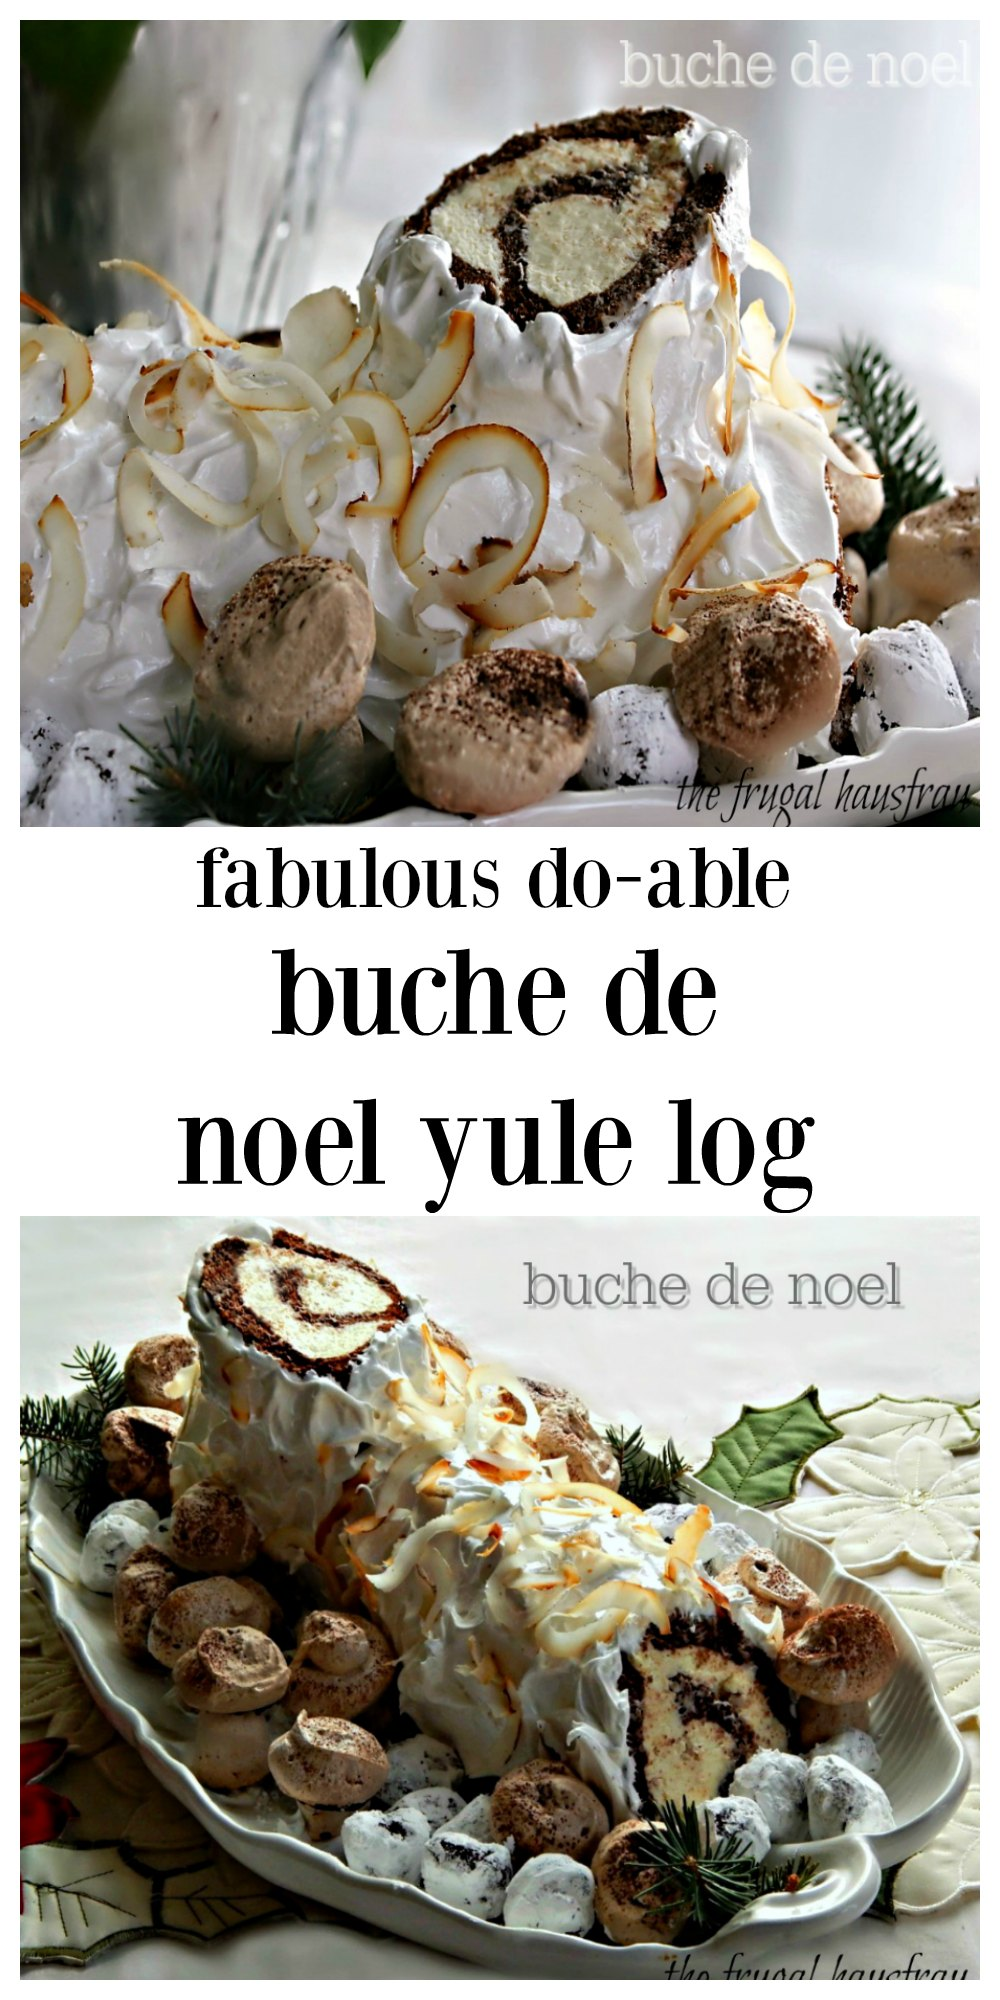 Buche de Noel Yule Log is truly a masterpiece with the dark chocolate cake, white chocolate mousse, and billowy sparkly snow frosting, but easy enough with the right recipe! Not to mention truffles and meringue mushrooms! I'm breaking it down so it's do-able & you're gonna be a hero this year! #BucheDeNoel #YuleLog #BirchDeNoel #MarthaStewartBucheDeNoel